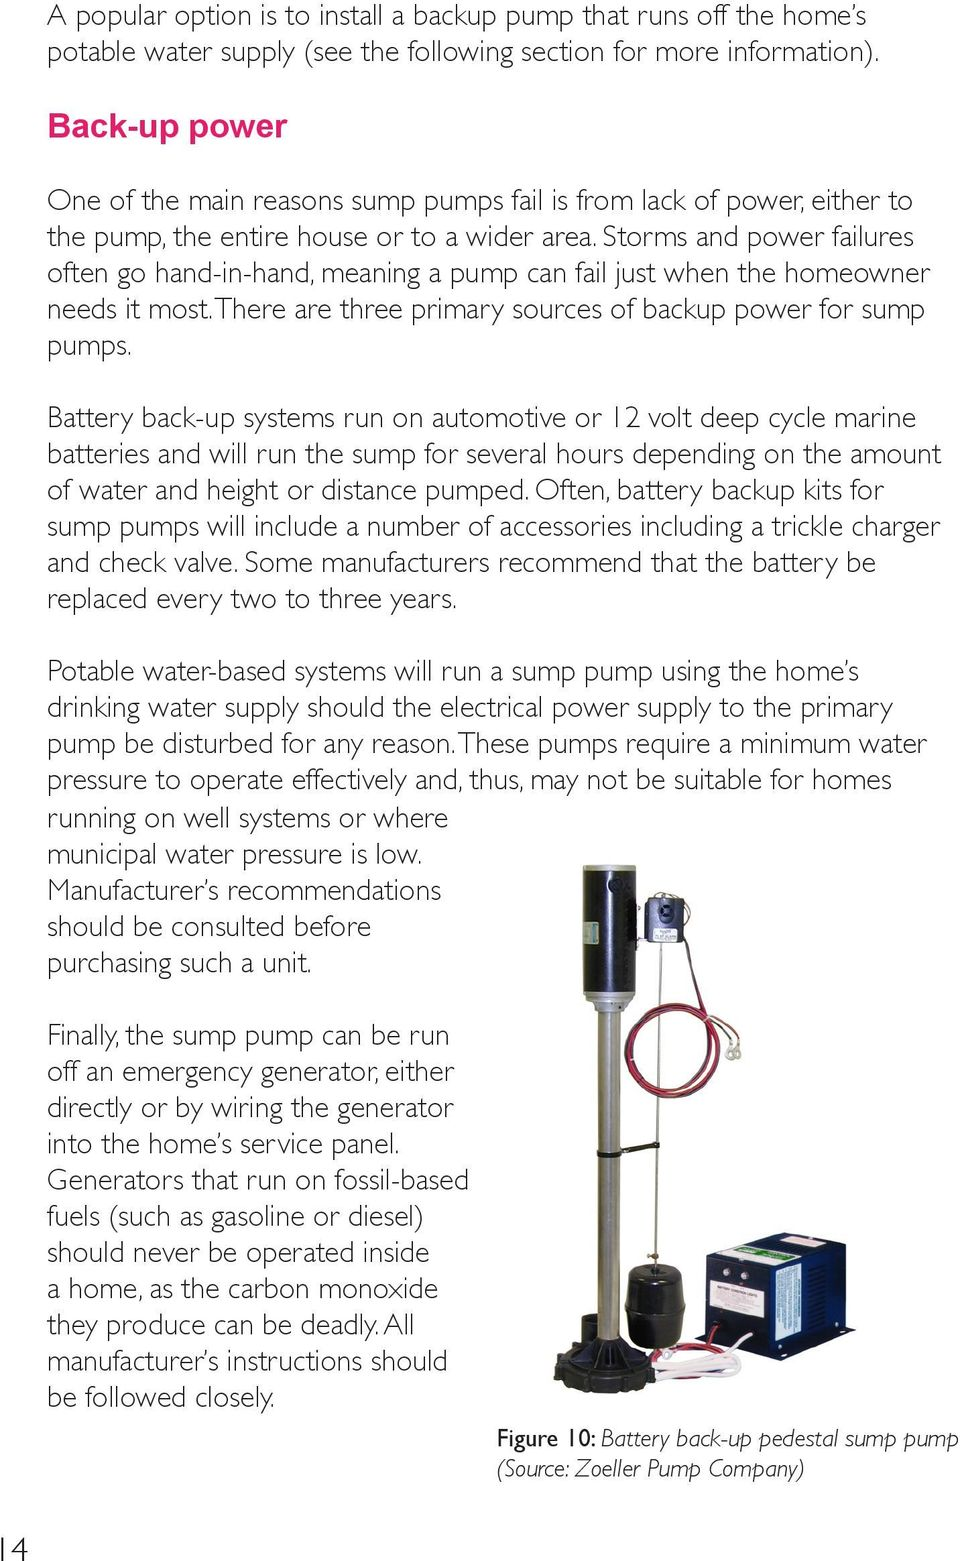 Storms and power failures often go hand-in-hand, meaning a pump can fail just when the homeowner needs it most. There are three primary sources of backup power for sump pumps.